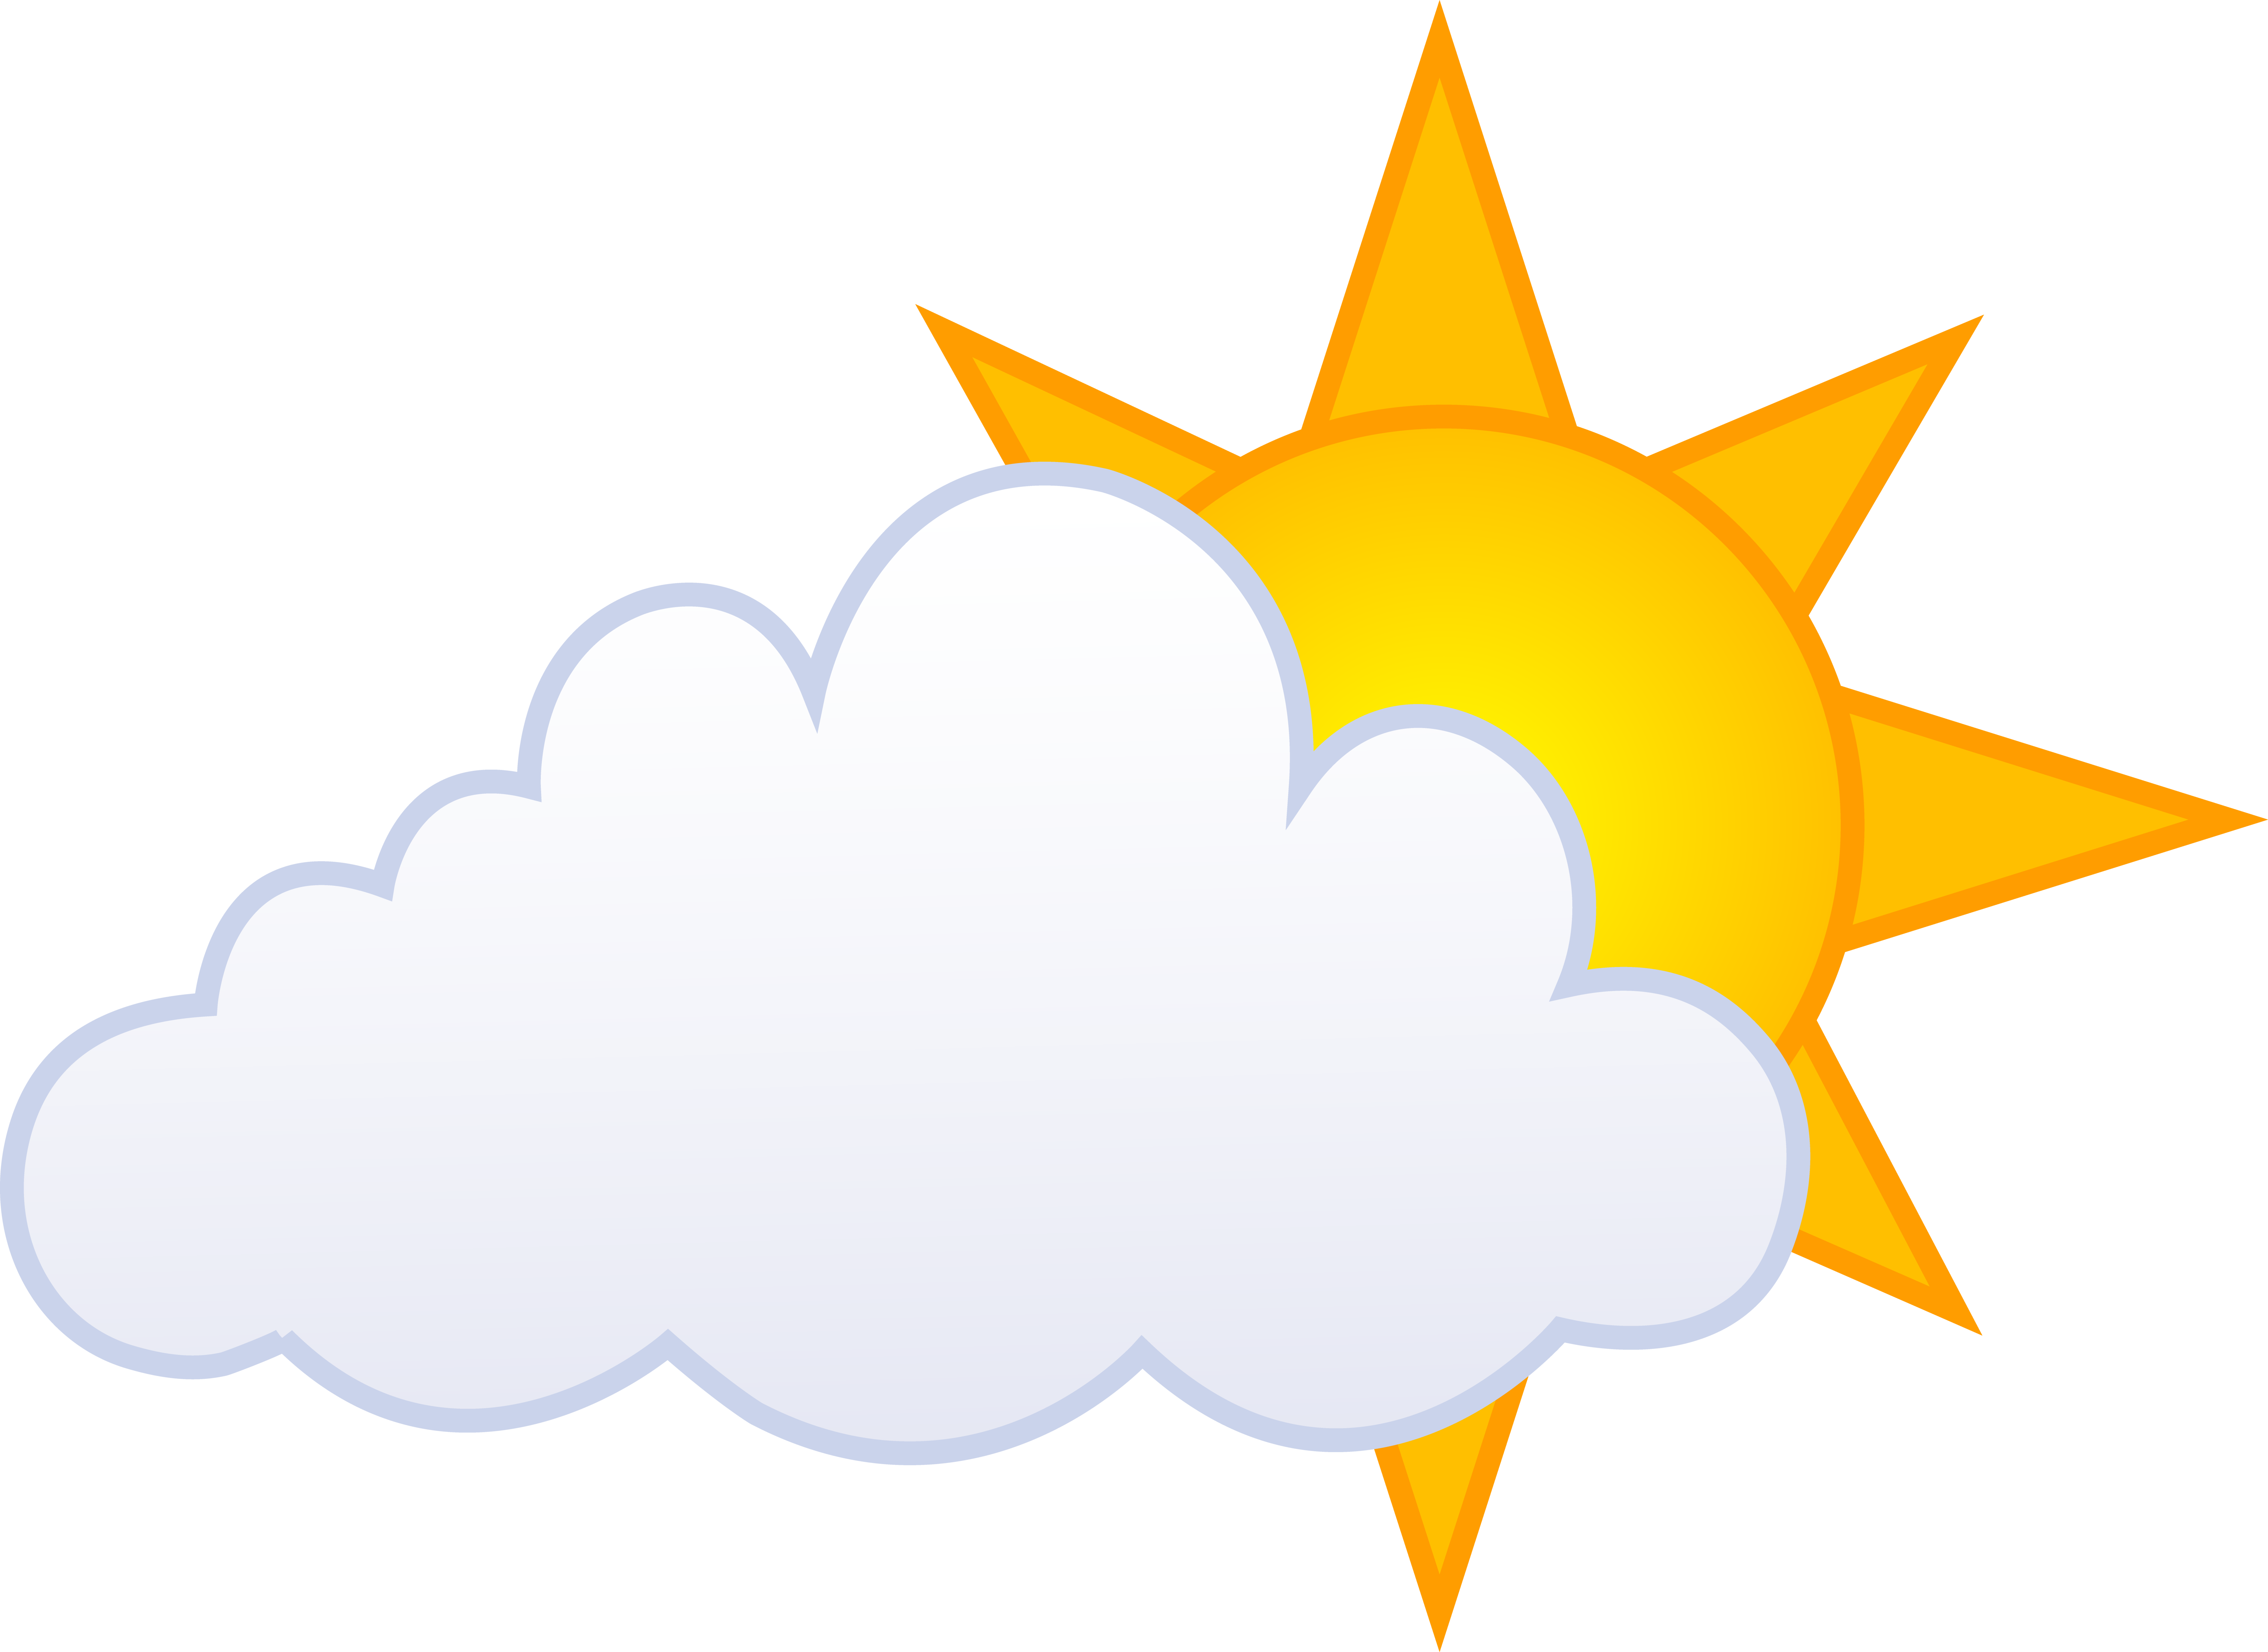 7553x5503 Partly Cloudy Weather Clip Art Clipart Free To Use Clip Art